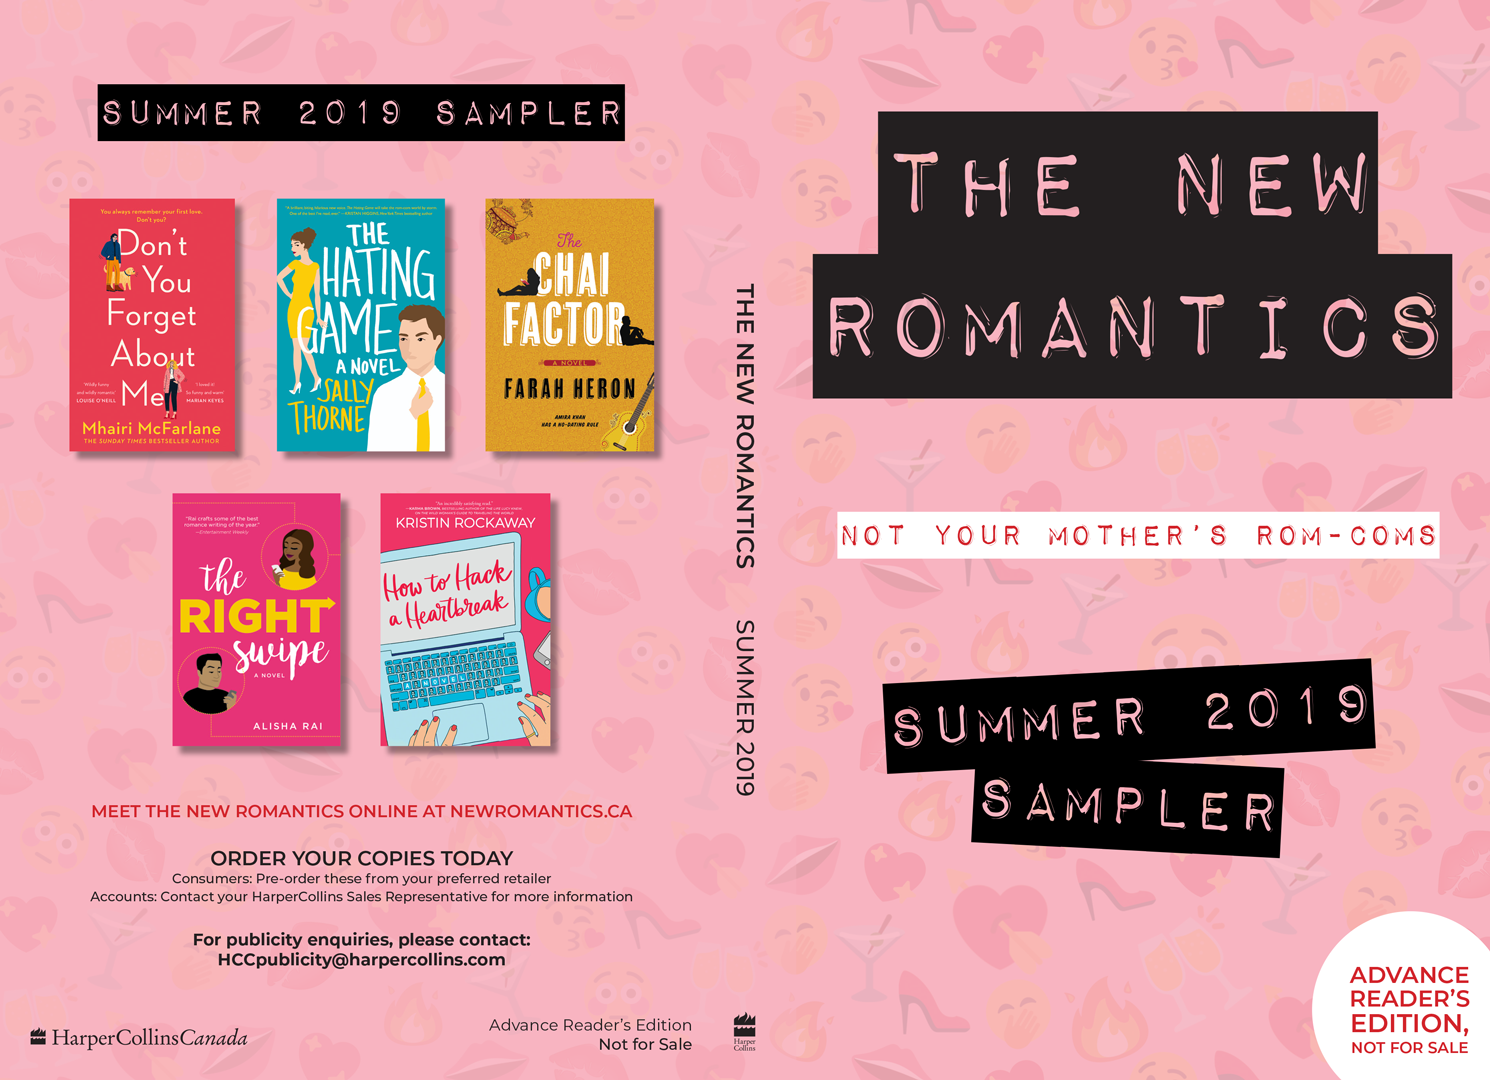 Exclusive Summer Sampler